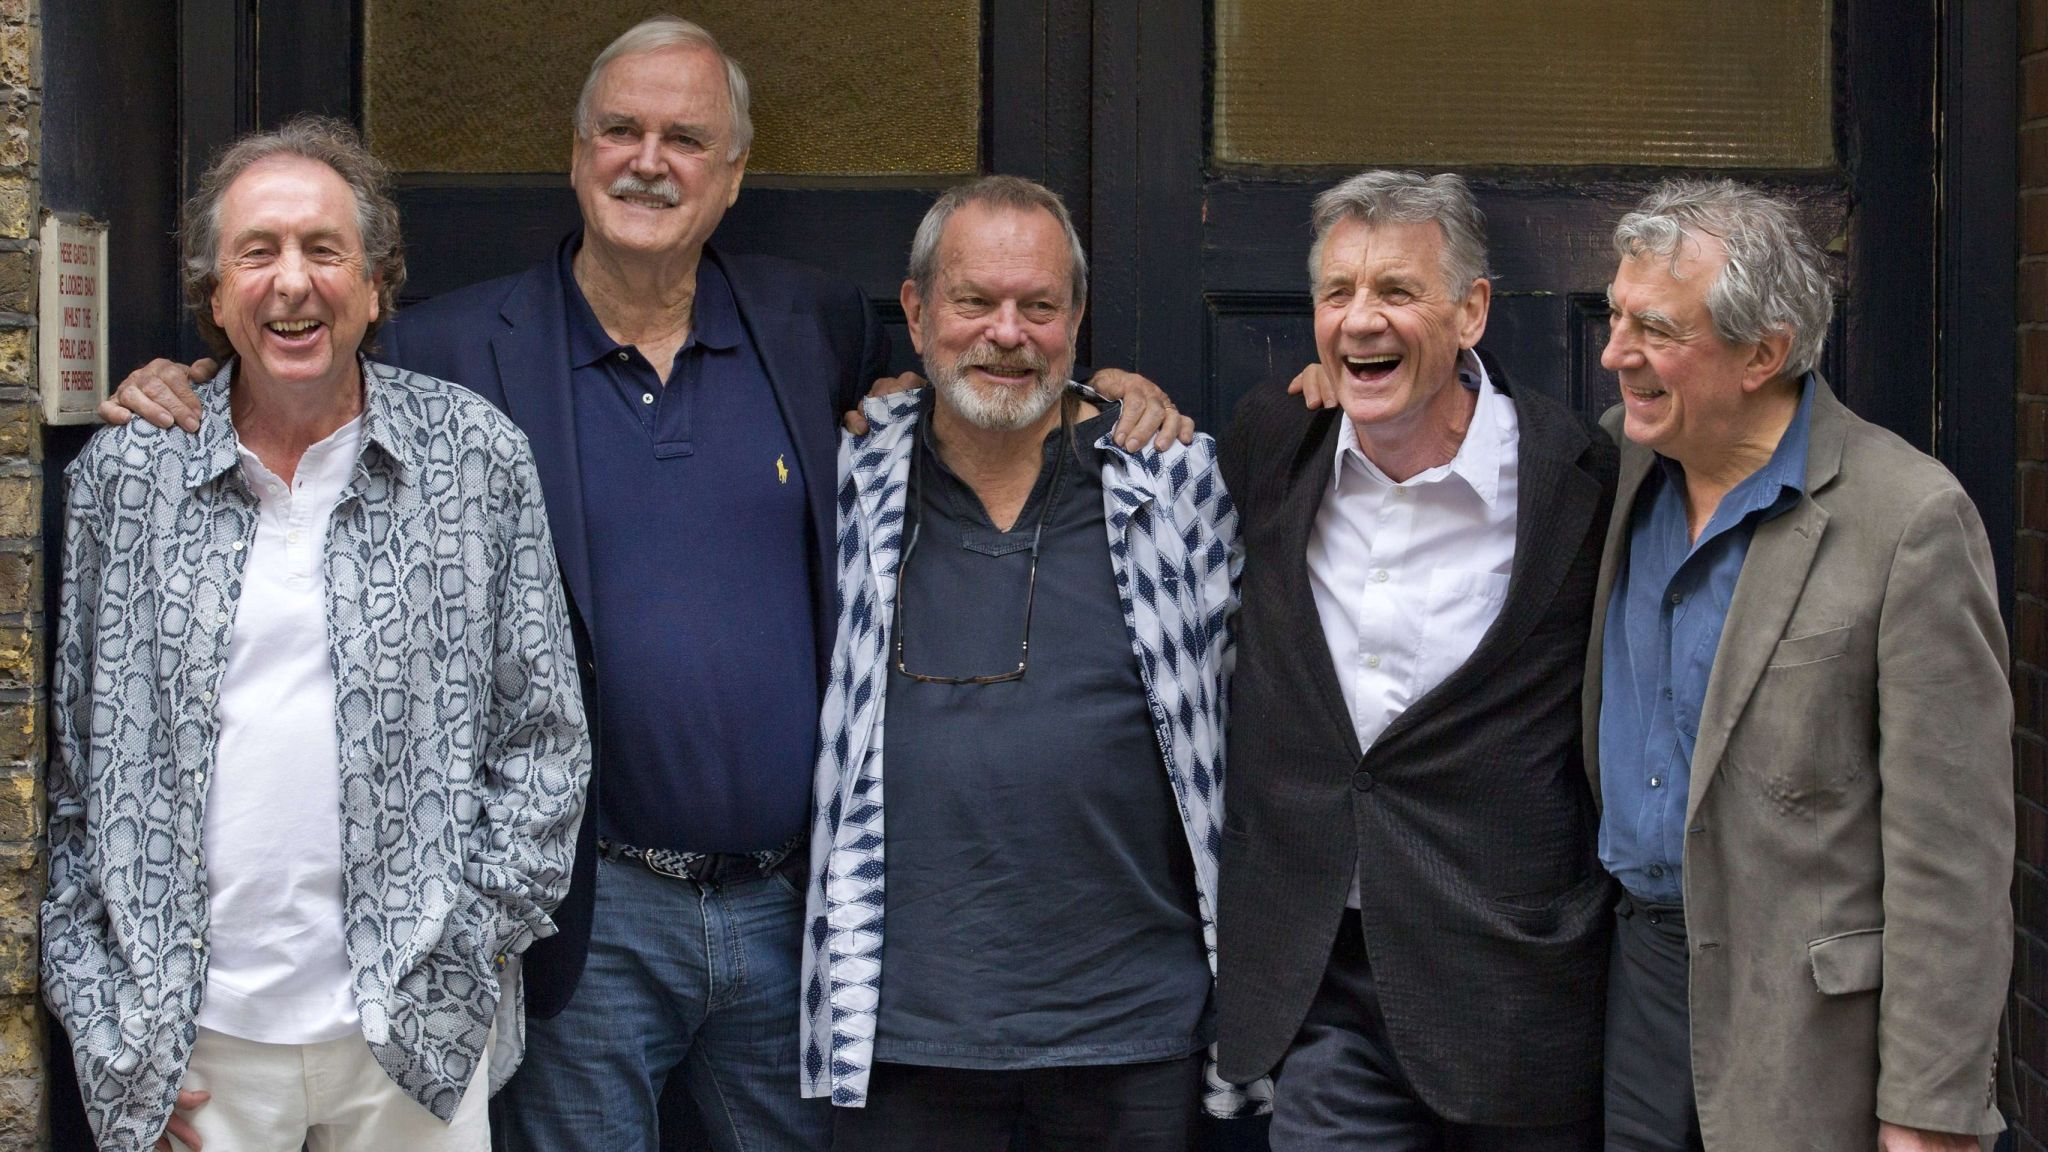 Monty Python pose for a photograph at the back door to the London Palladium in central London in 2014